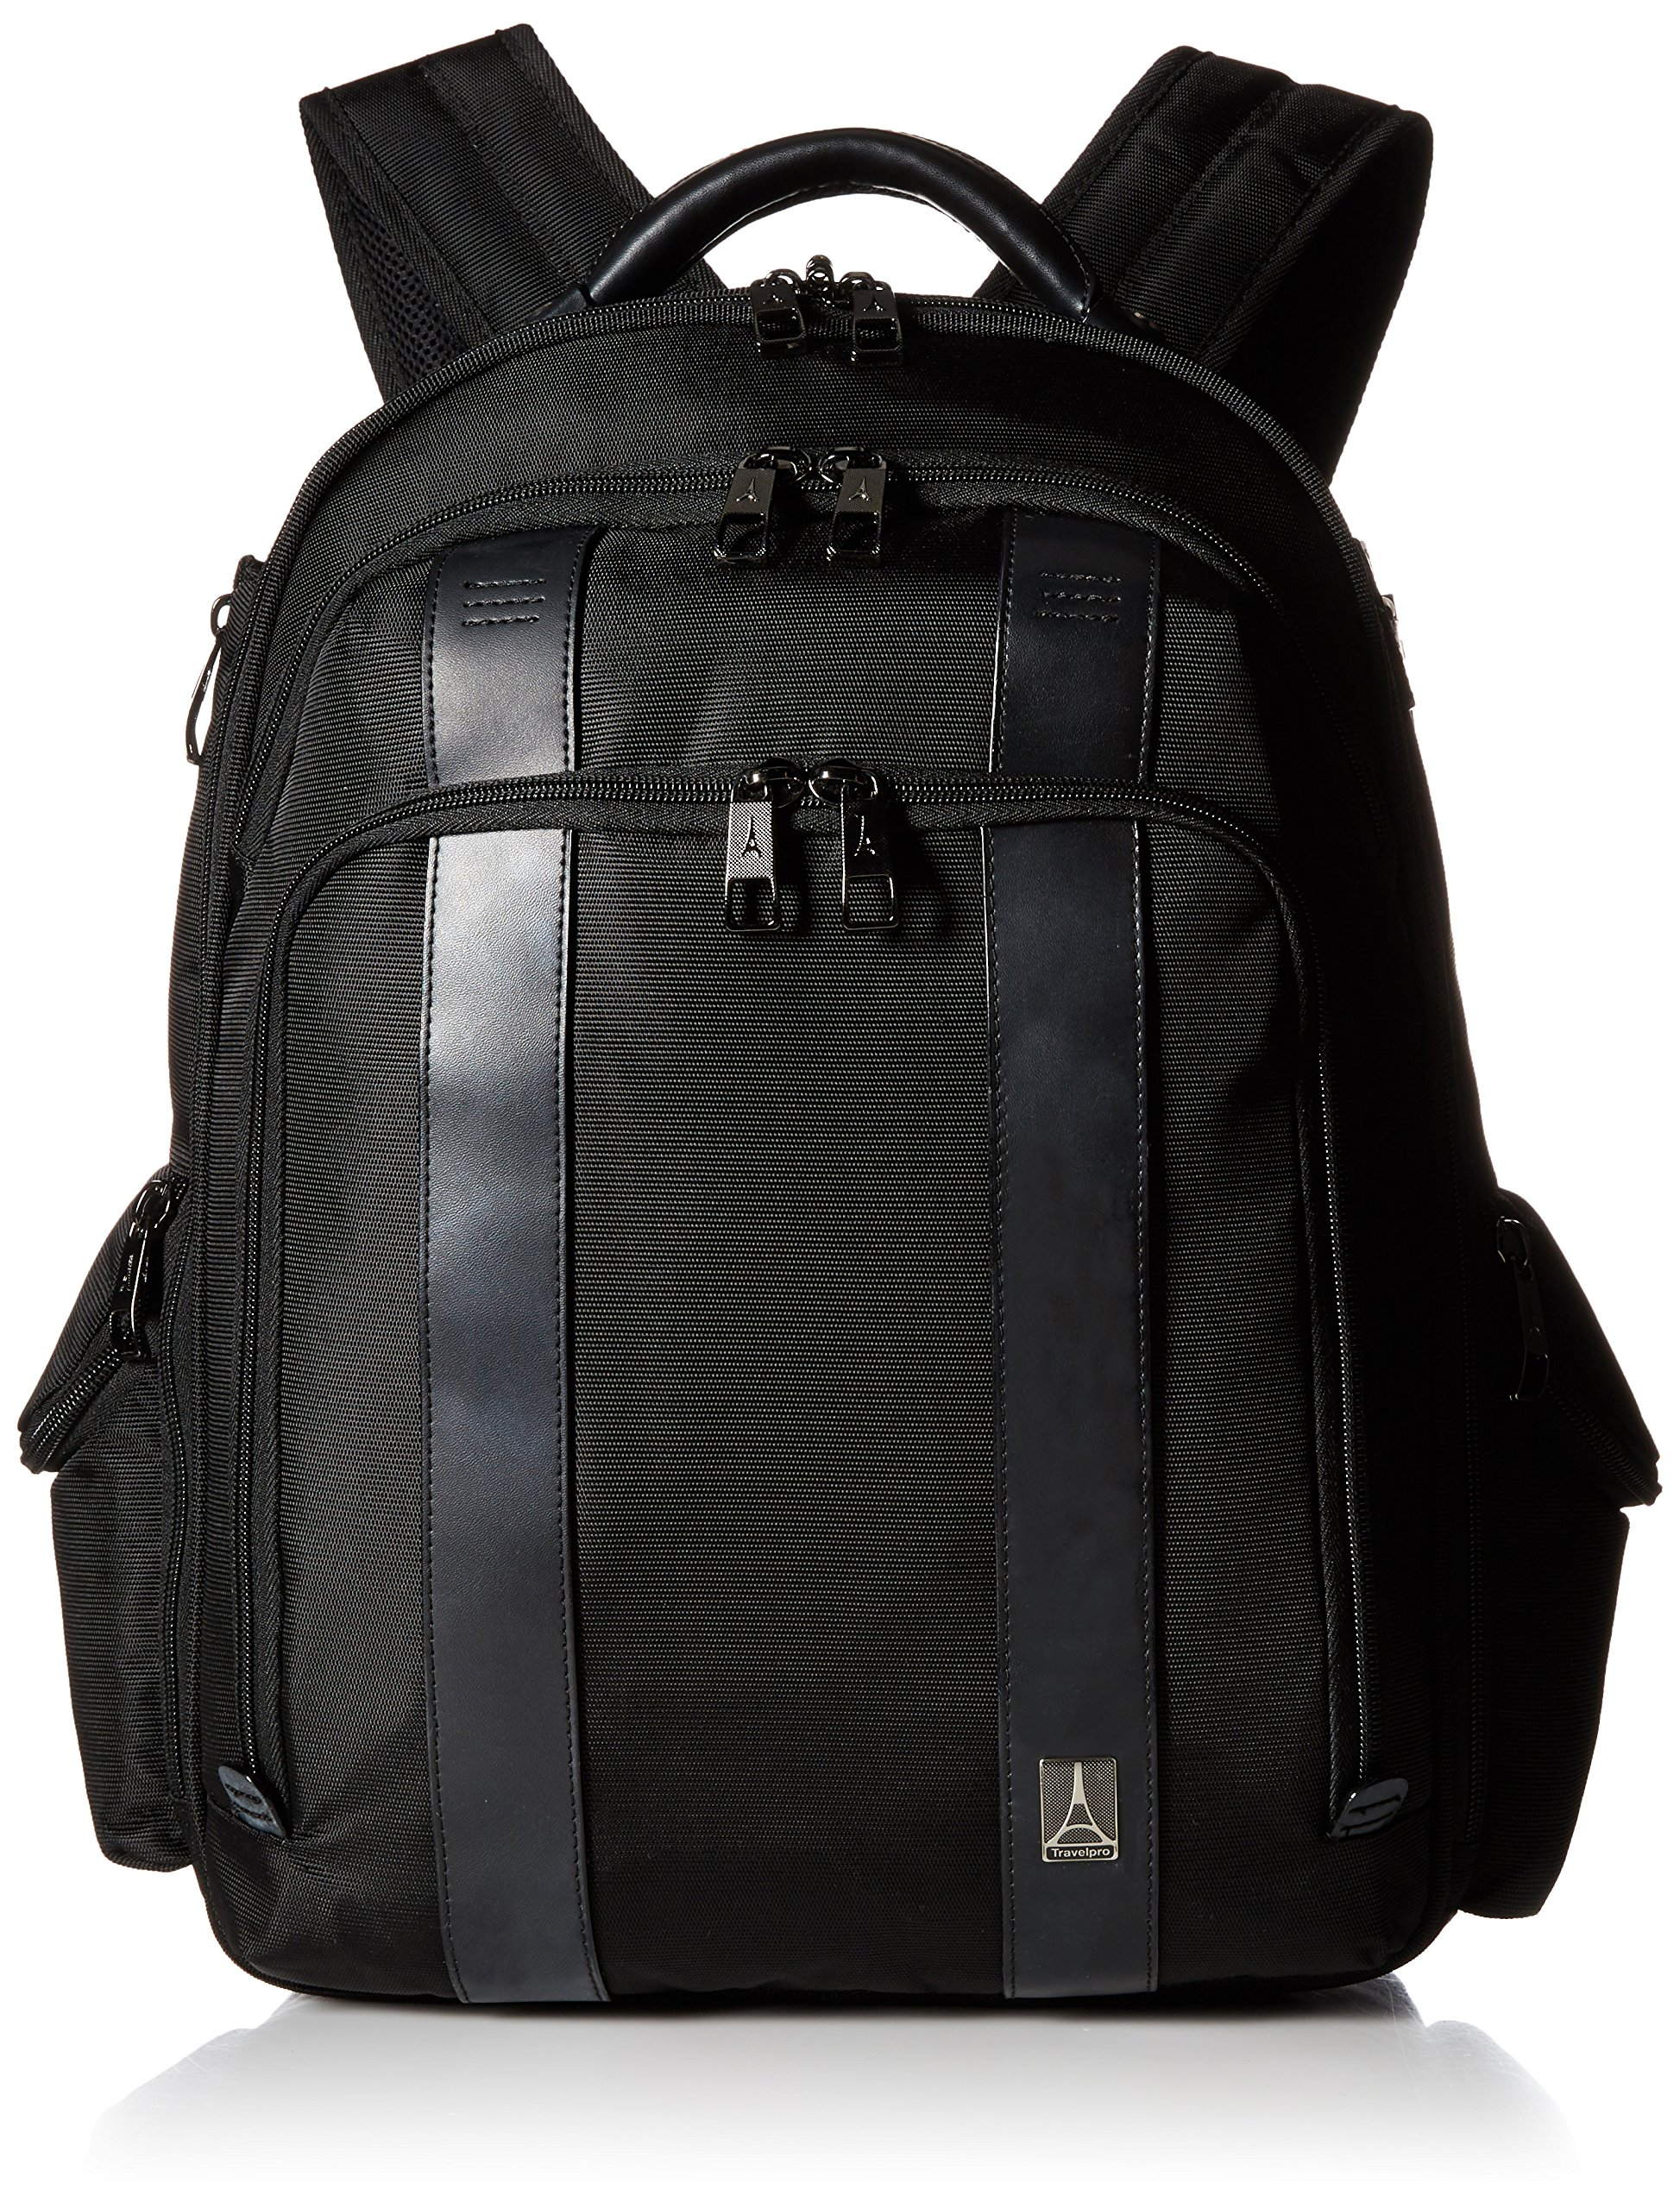 Travelpro Executive Choice Crew Checkpoint Friendly 17 Inch Computer Backpack, Black, One Size by Travelpro